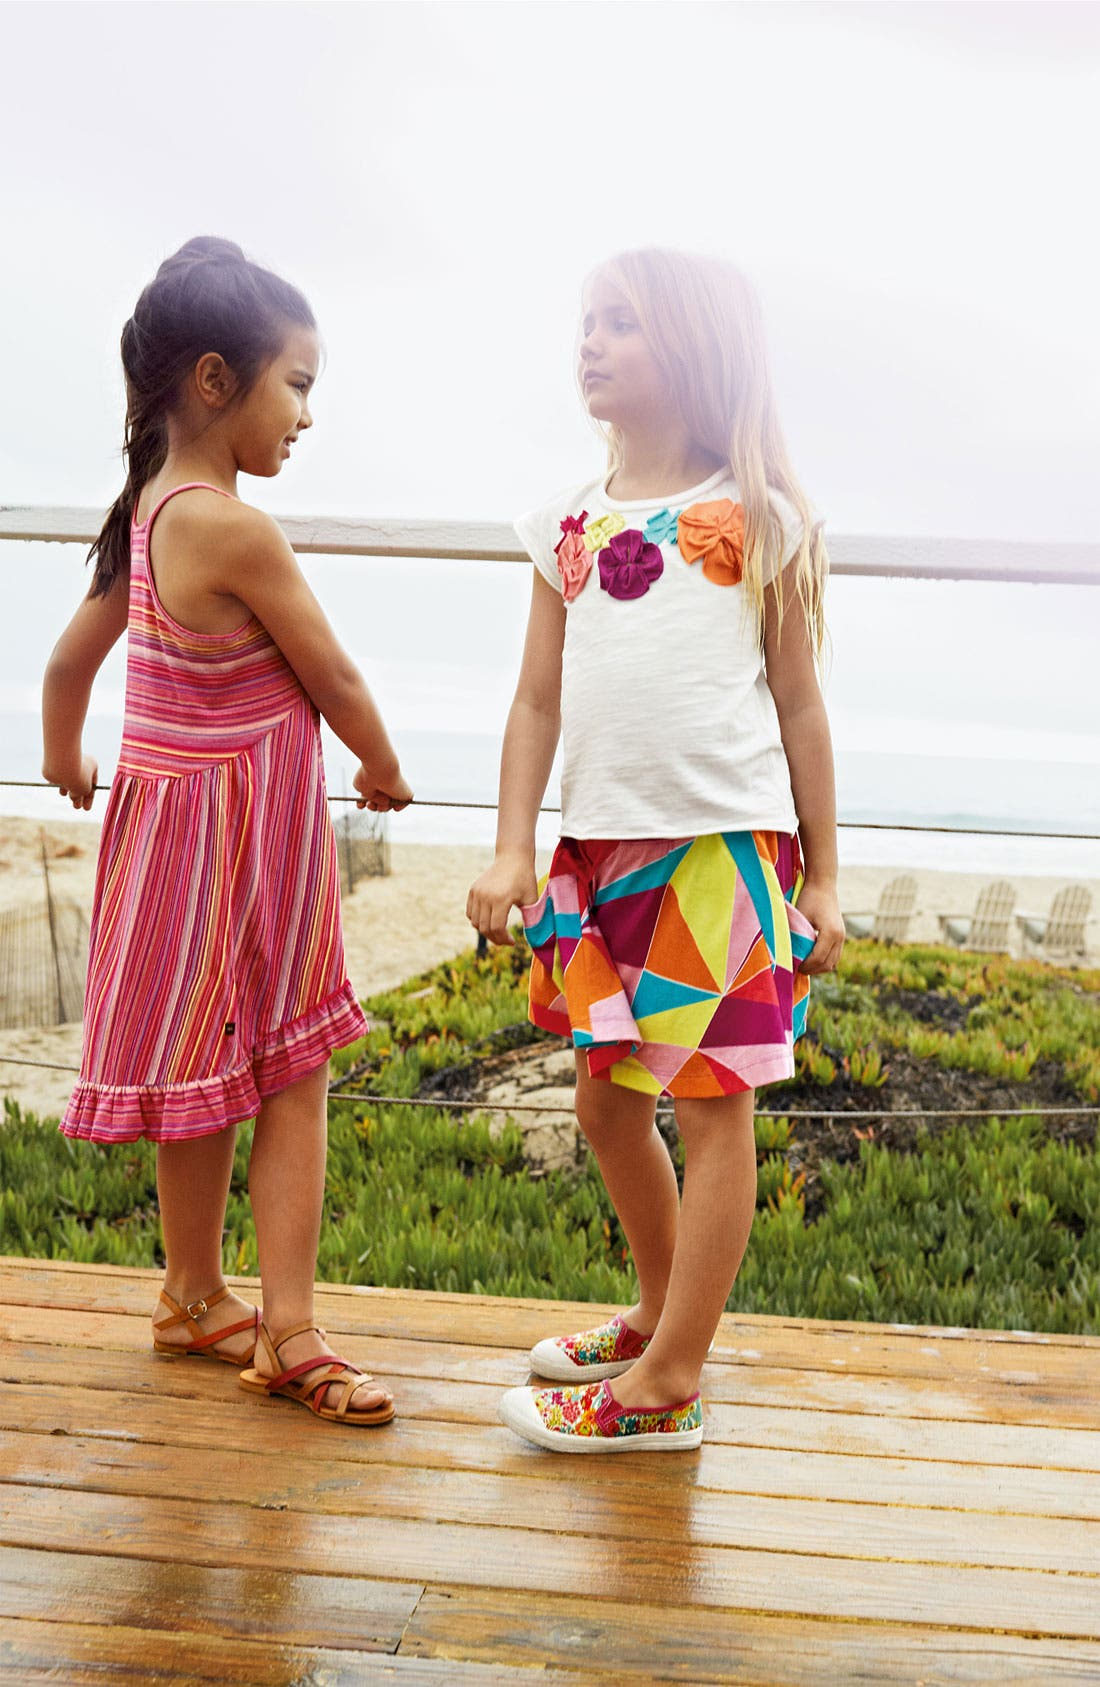 Alternate Image 1 Selected - Tea Collection Dress & Peek Sandal (Little Girls & Big Girls)